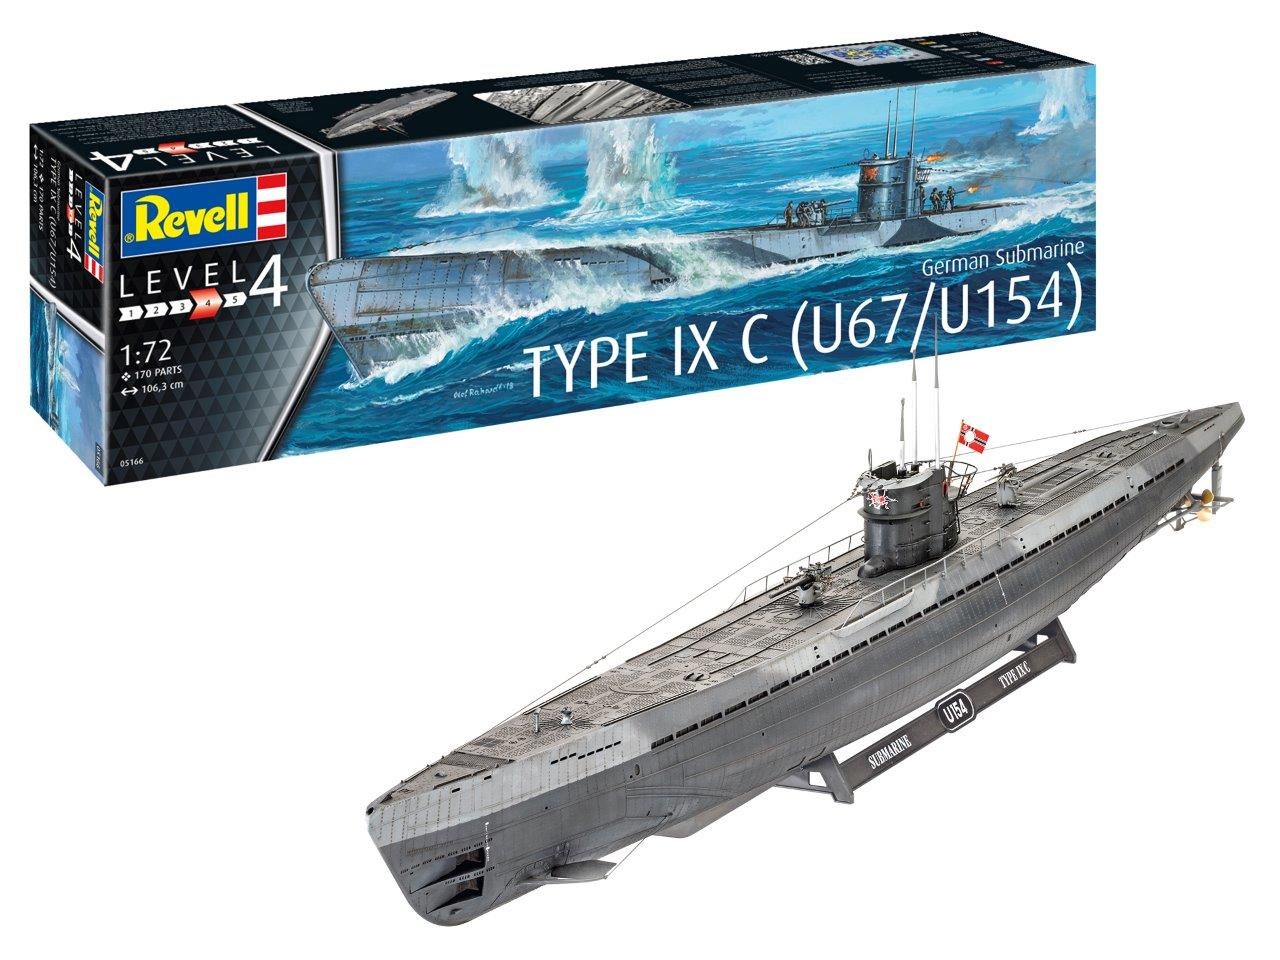 small resolution of description german submarine type ixc early turret due september 2019 manufacturer revell code number rv5166 scale 1 72 item type ship kits